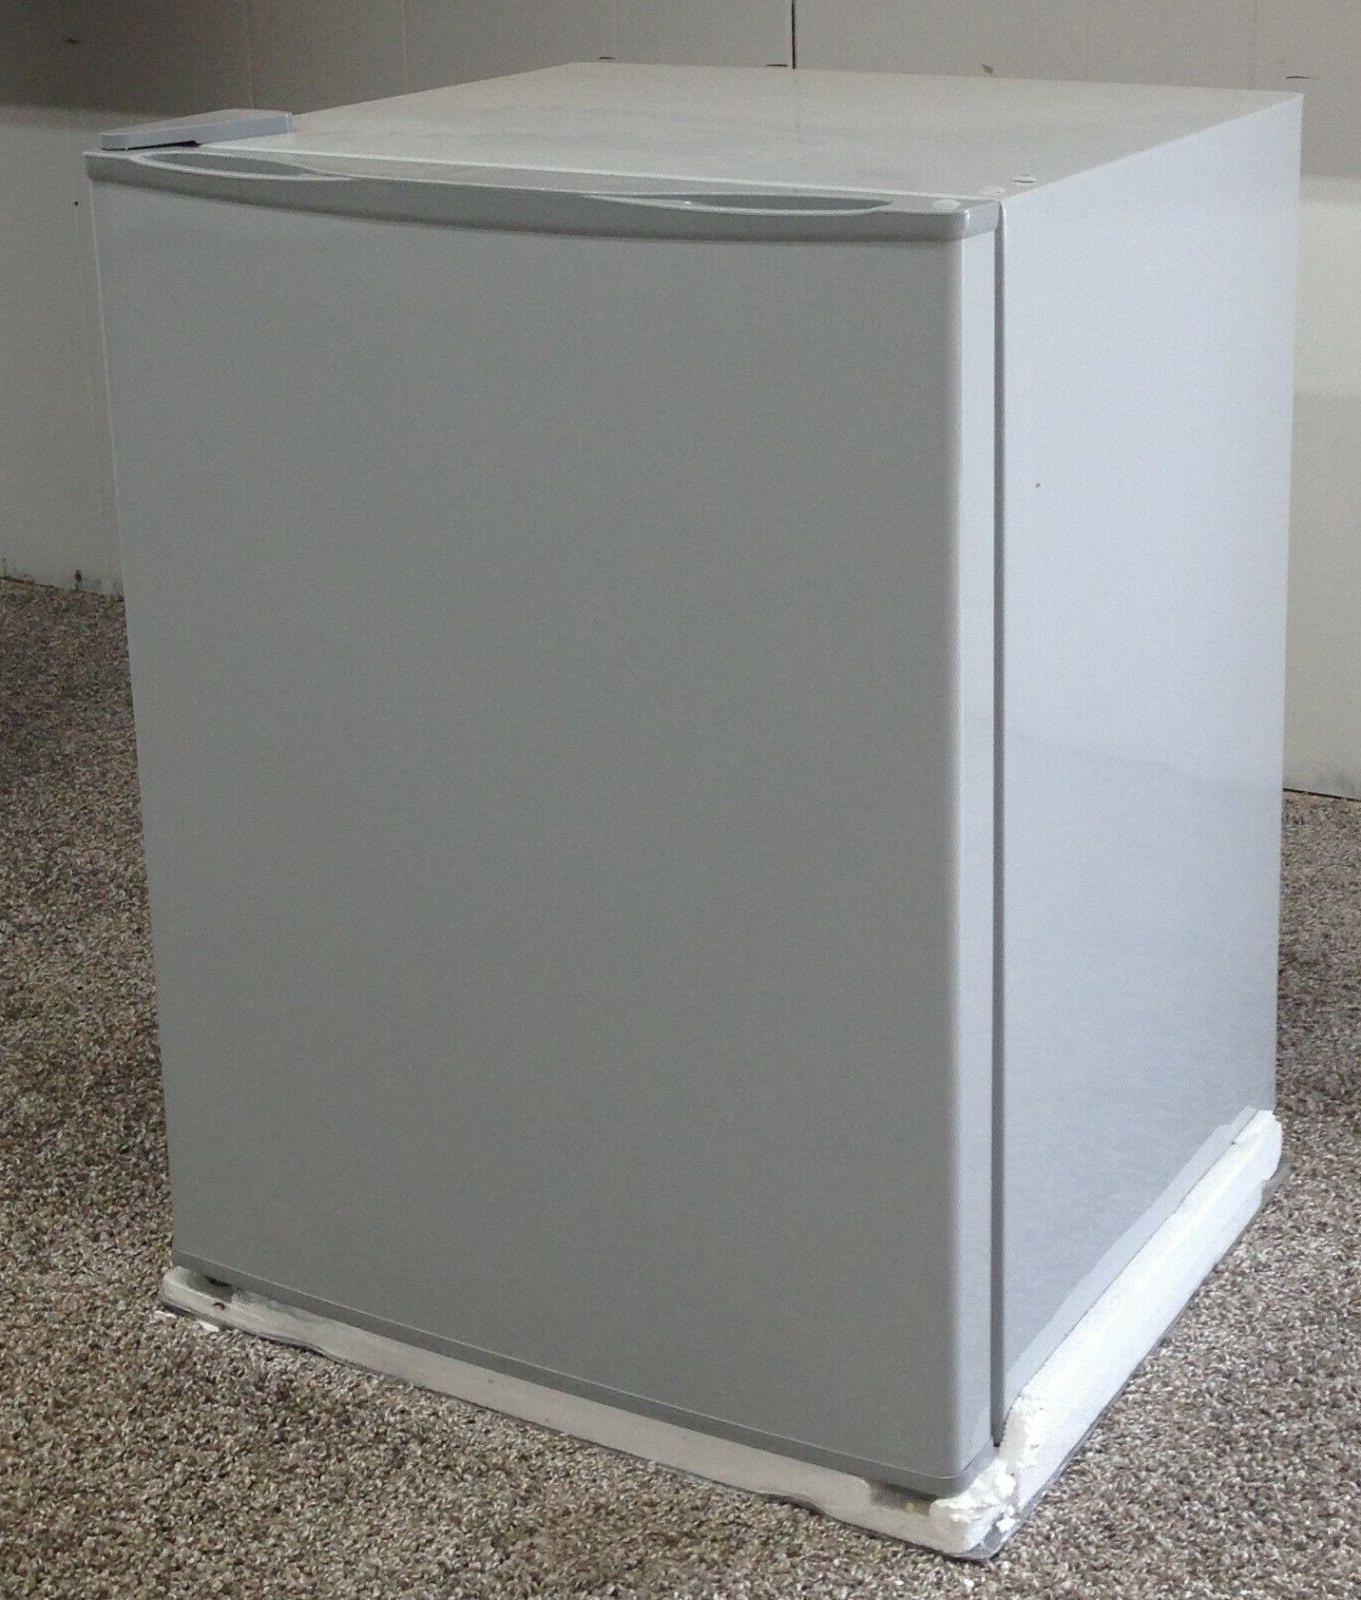 2 1 cubic foot apartment size refrigerator